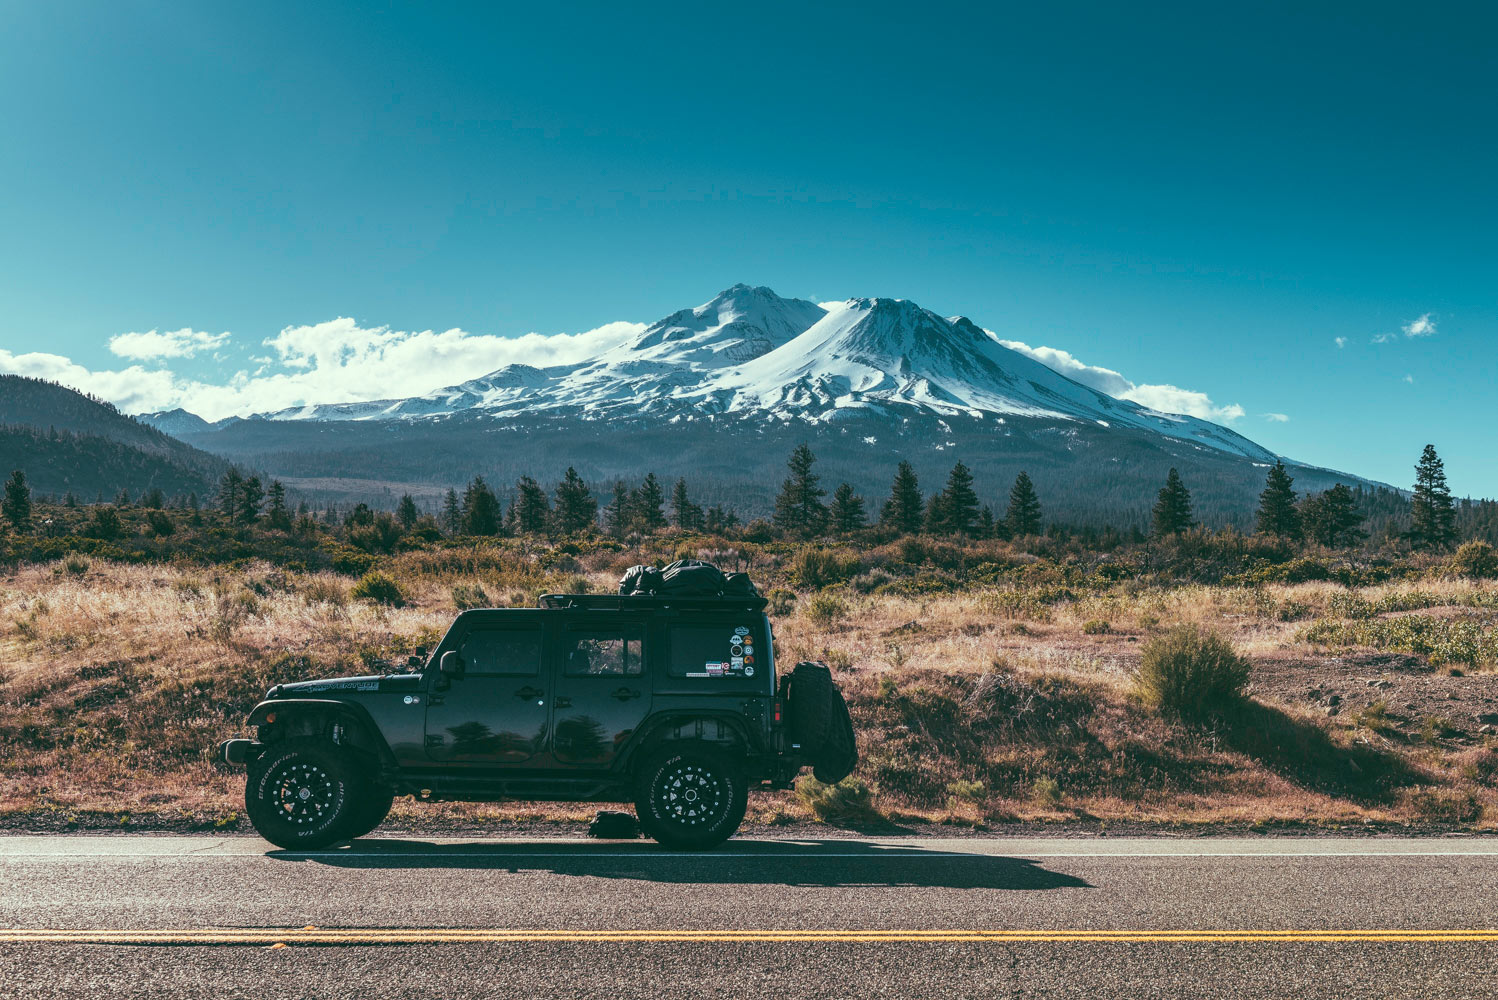 Jeep with snowy mountain backdrop